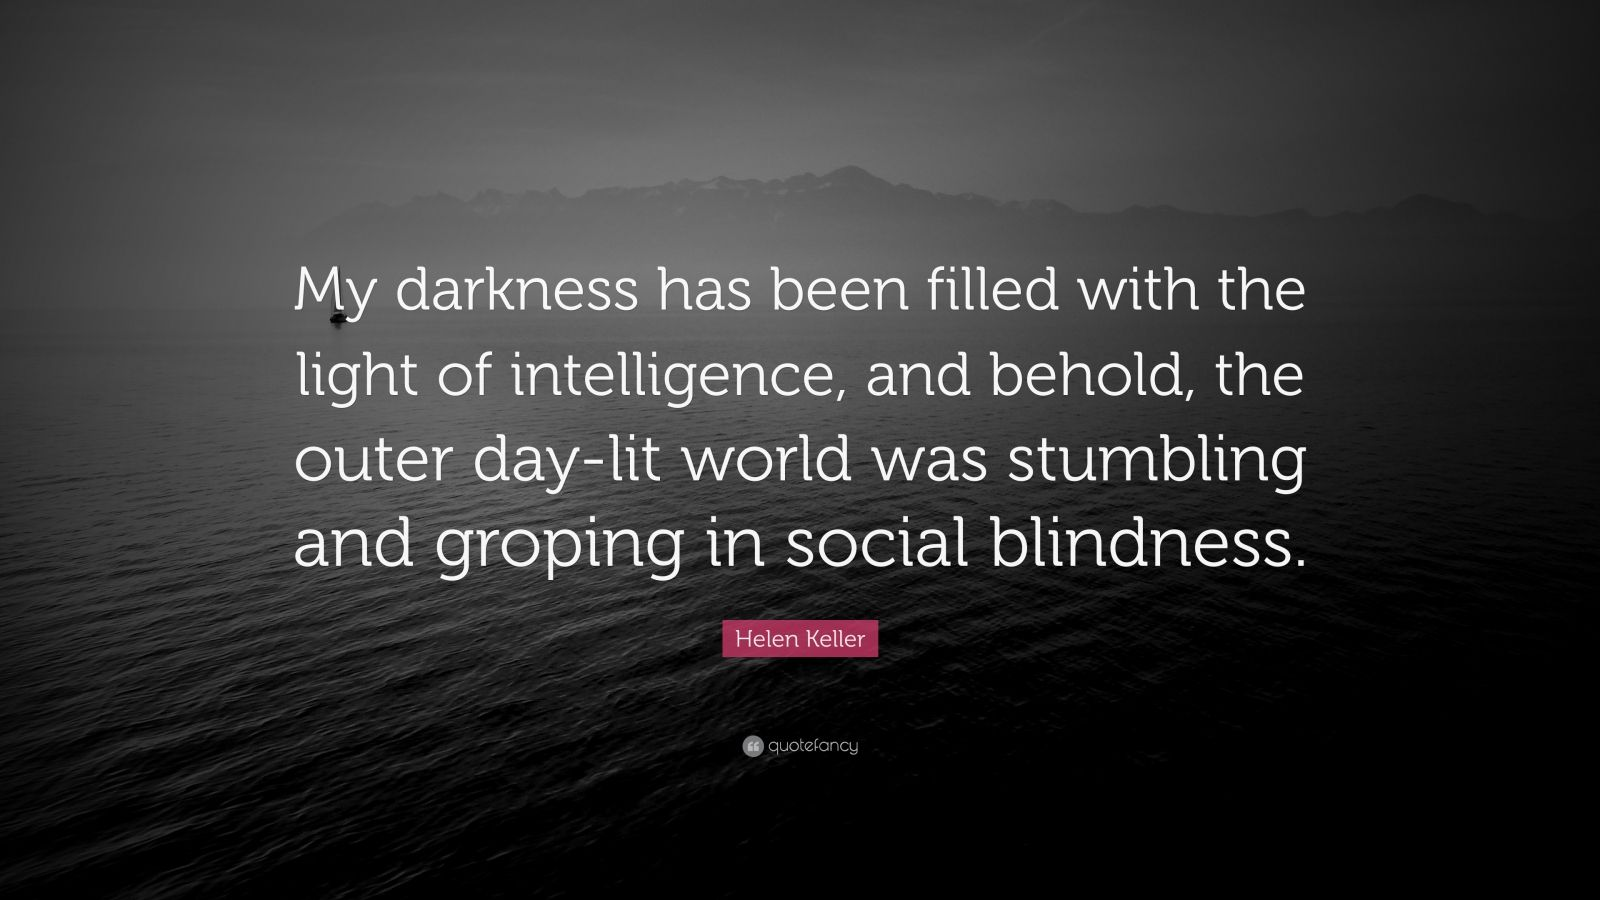 """Helen Keller Quote: """"My darkness has been filled with the light of intelligence, and behold, the outer day-lit world was stumbling and groping in social blindness."""""""